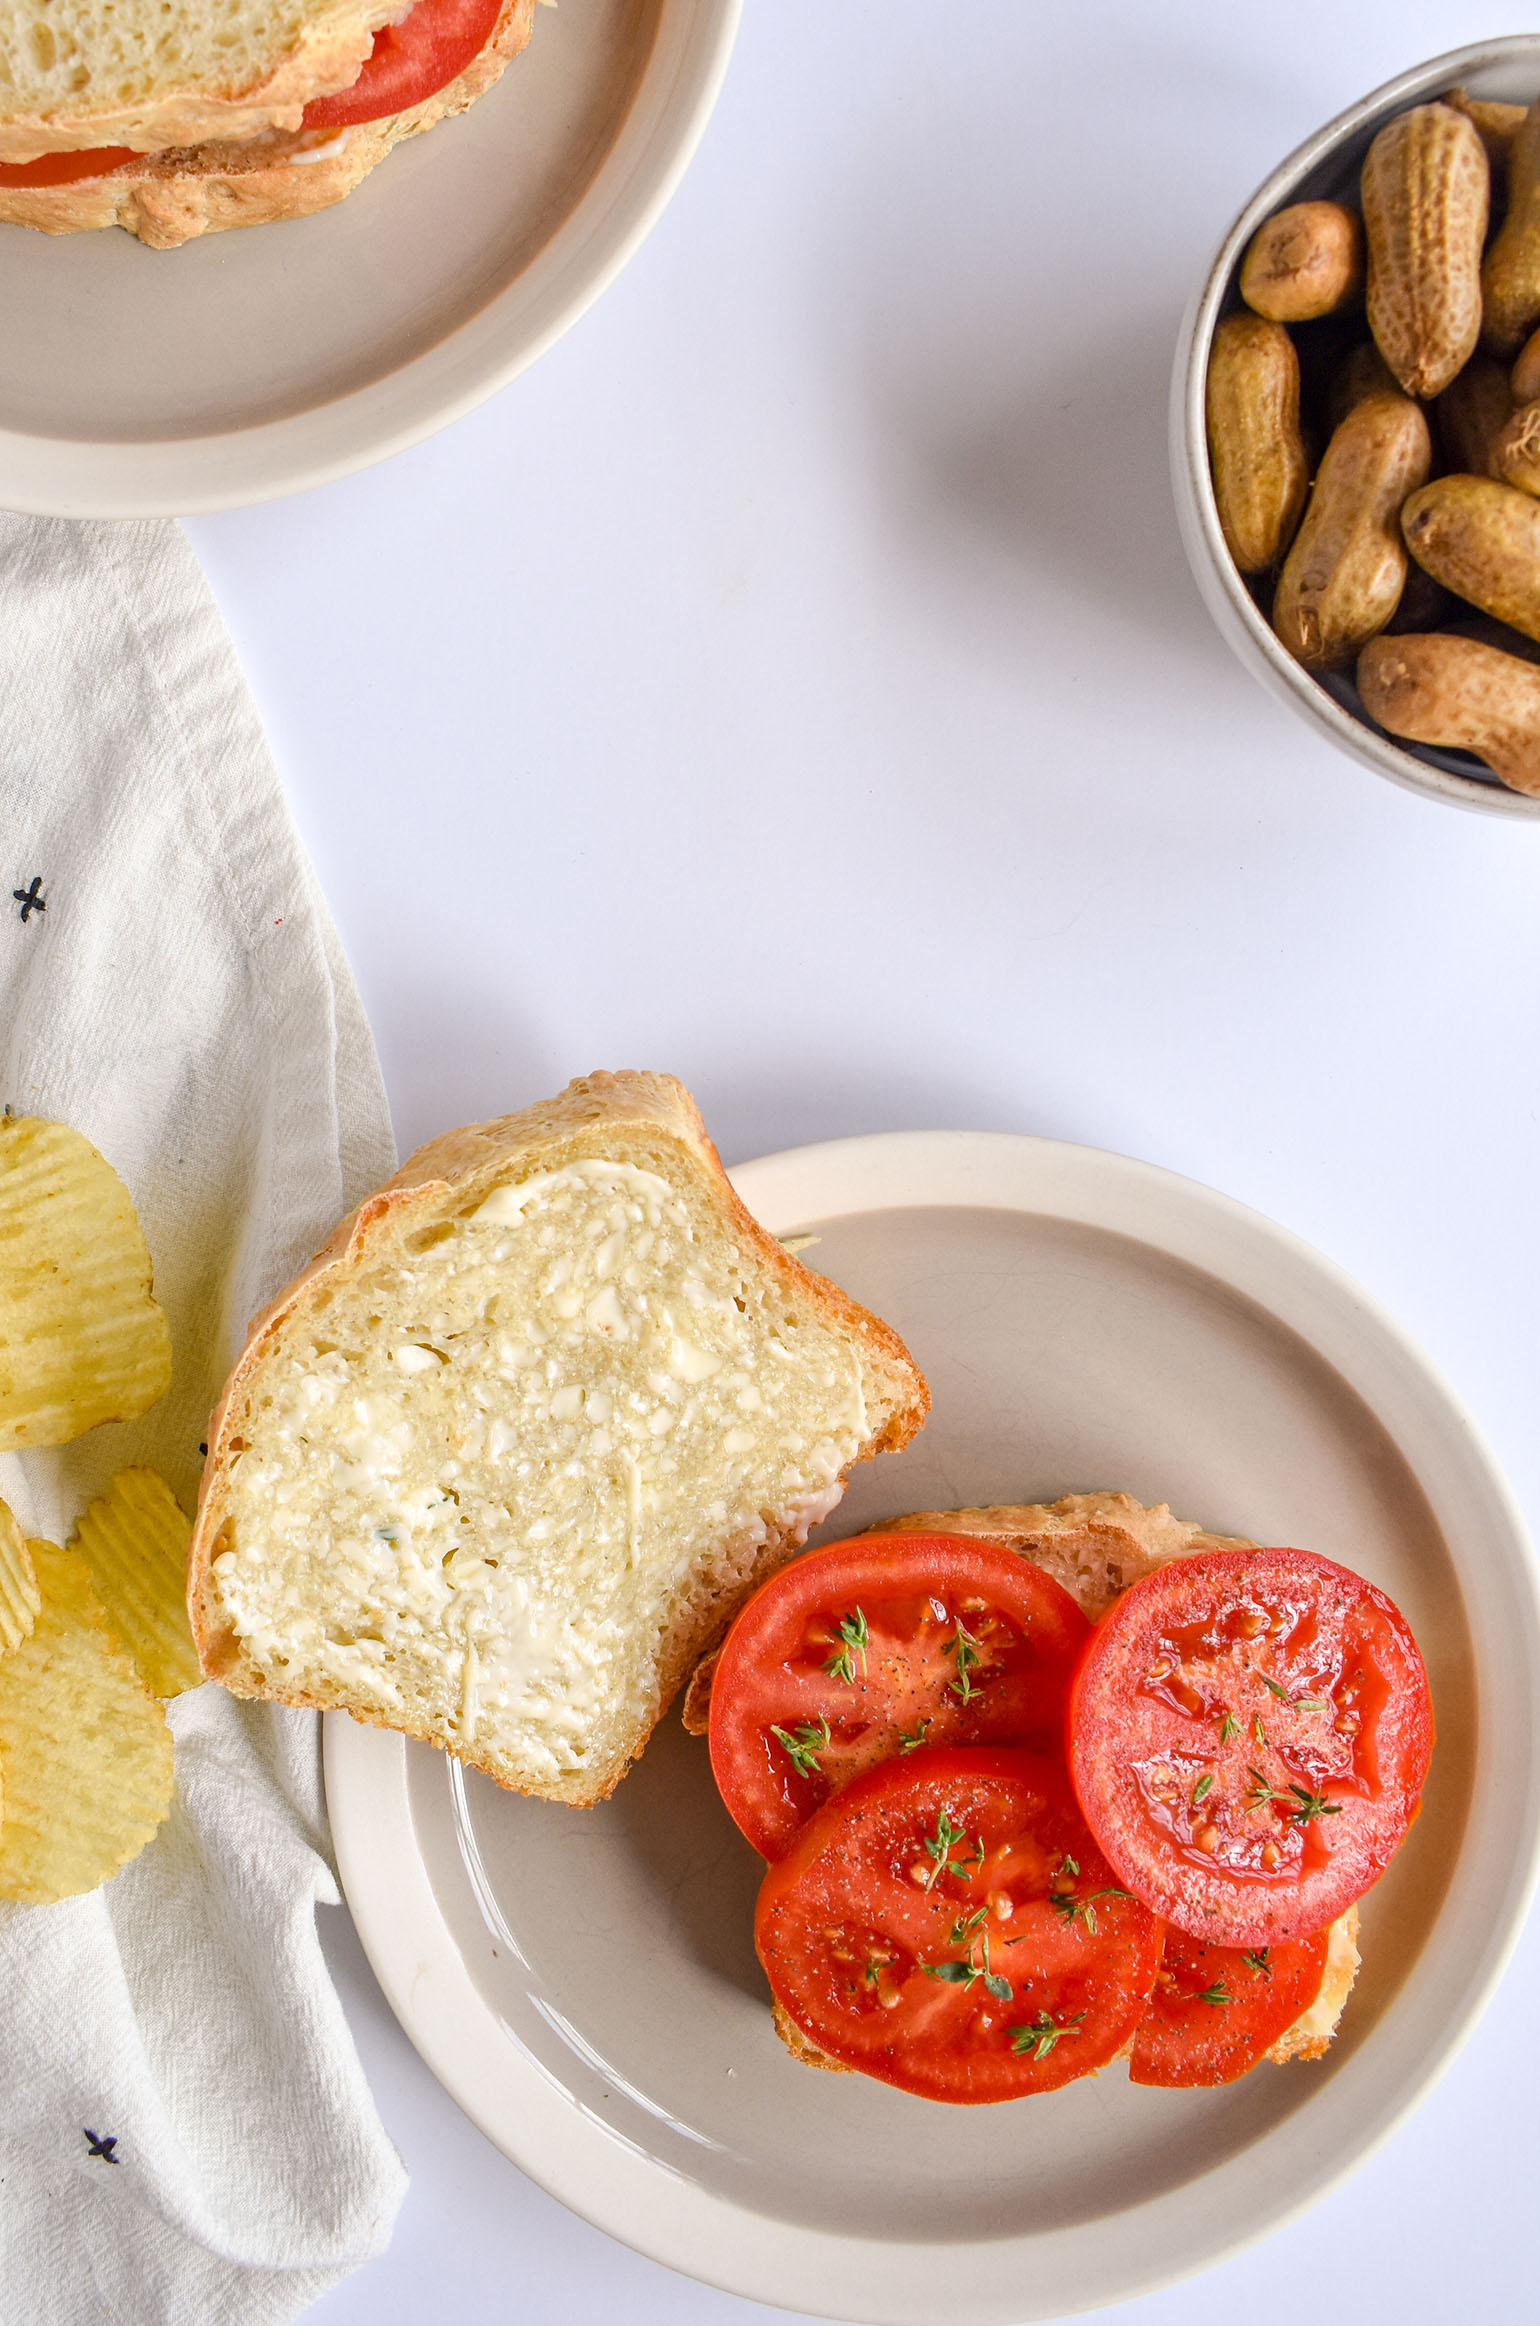 Tomato and mayo sandwiches with chips